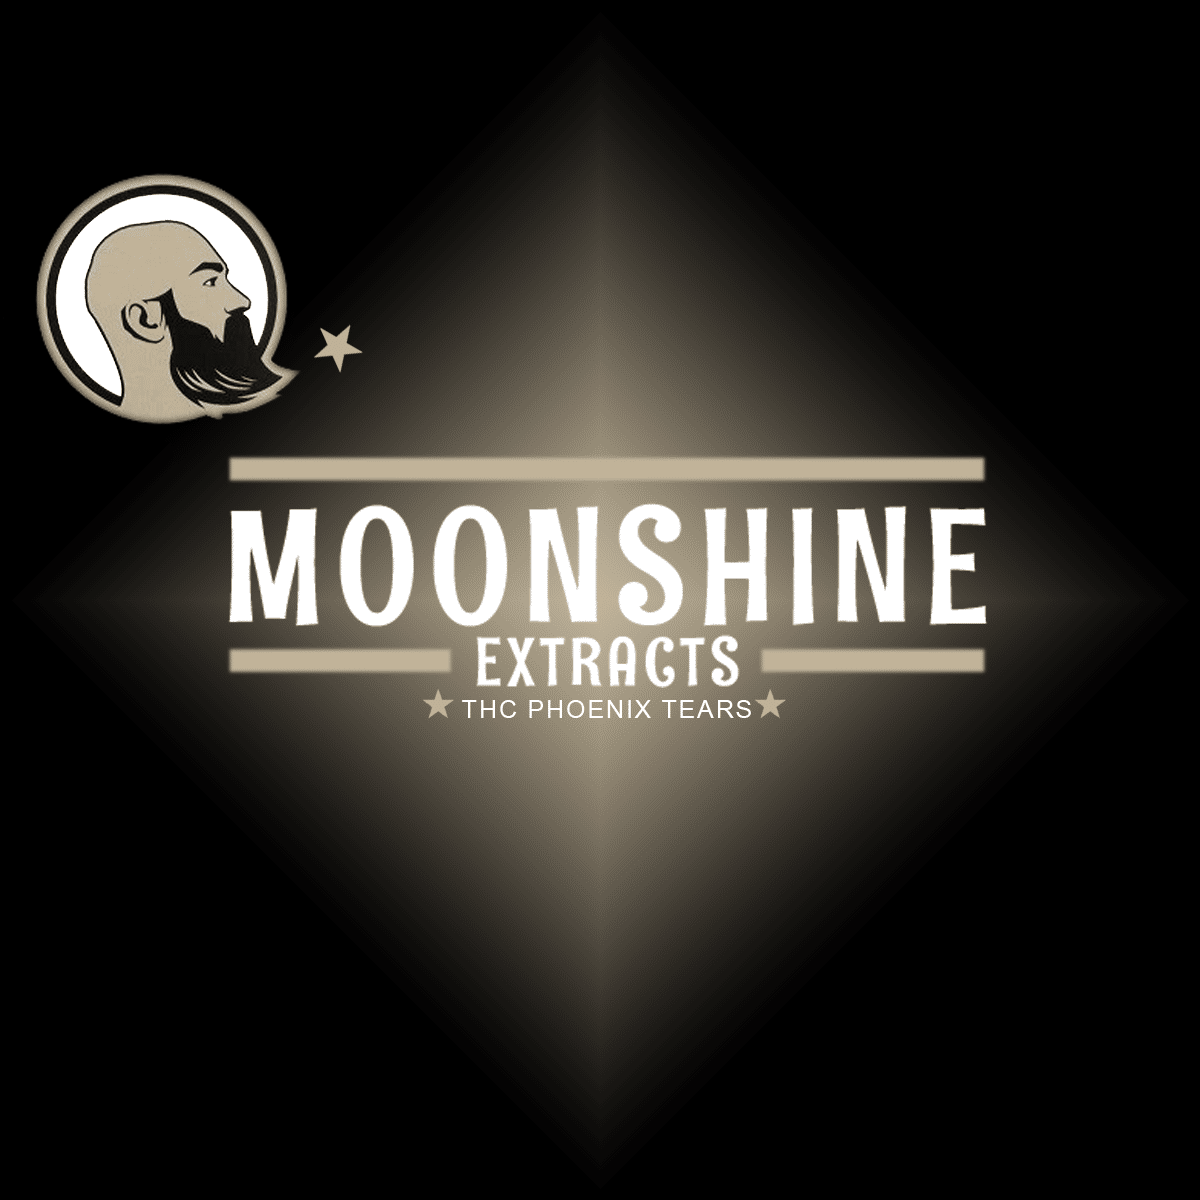 Moonshine Extracts 800mg THC Phoenix Tears by Green Society - Image © 2018 Green Society. All Rights Reserved.